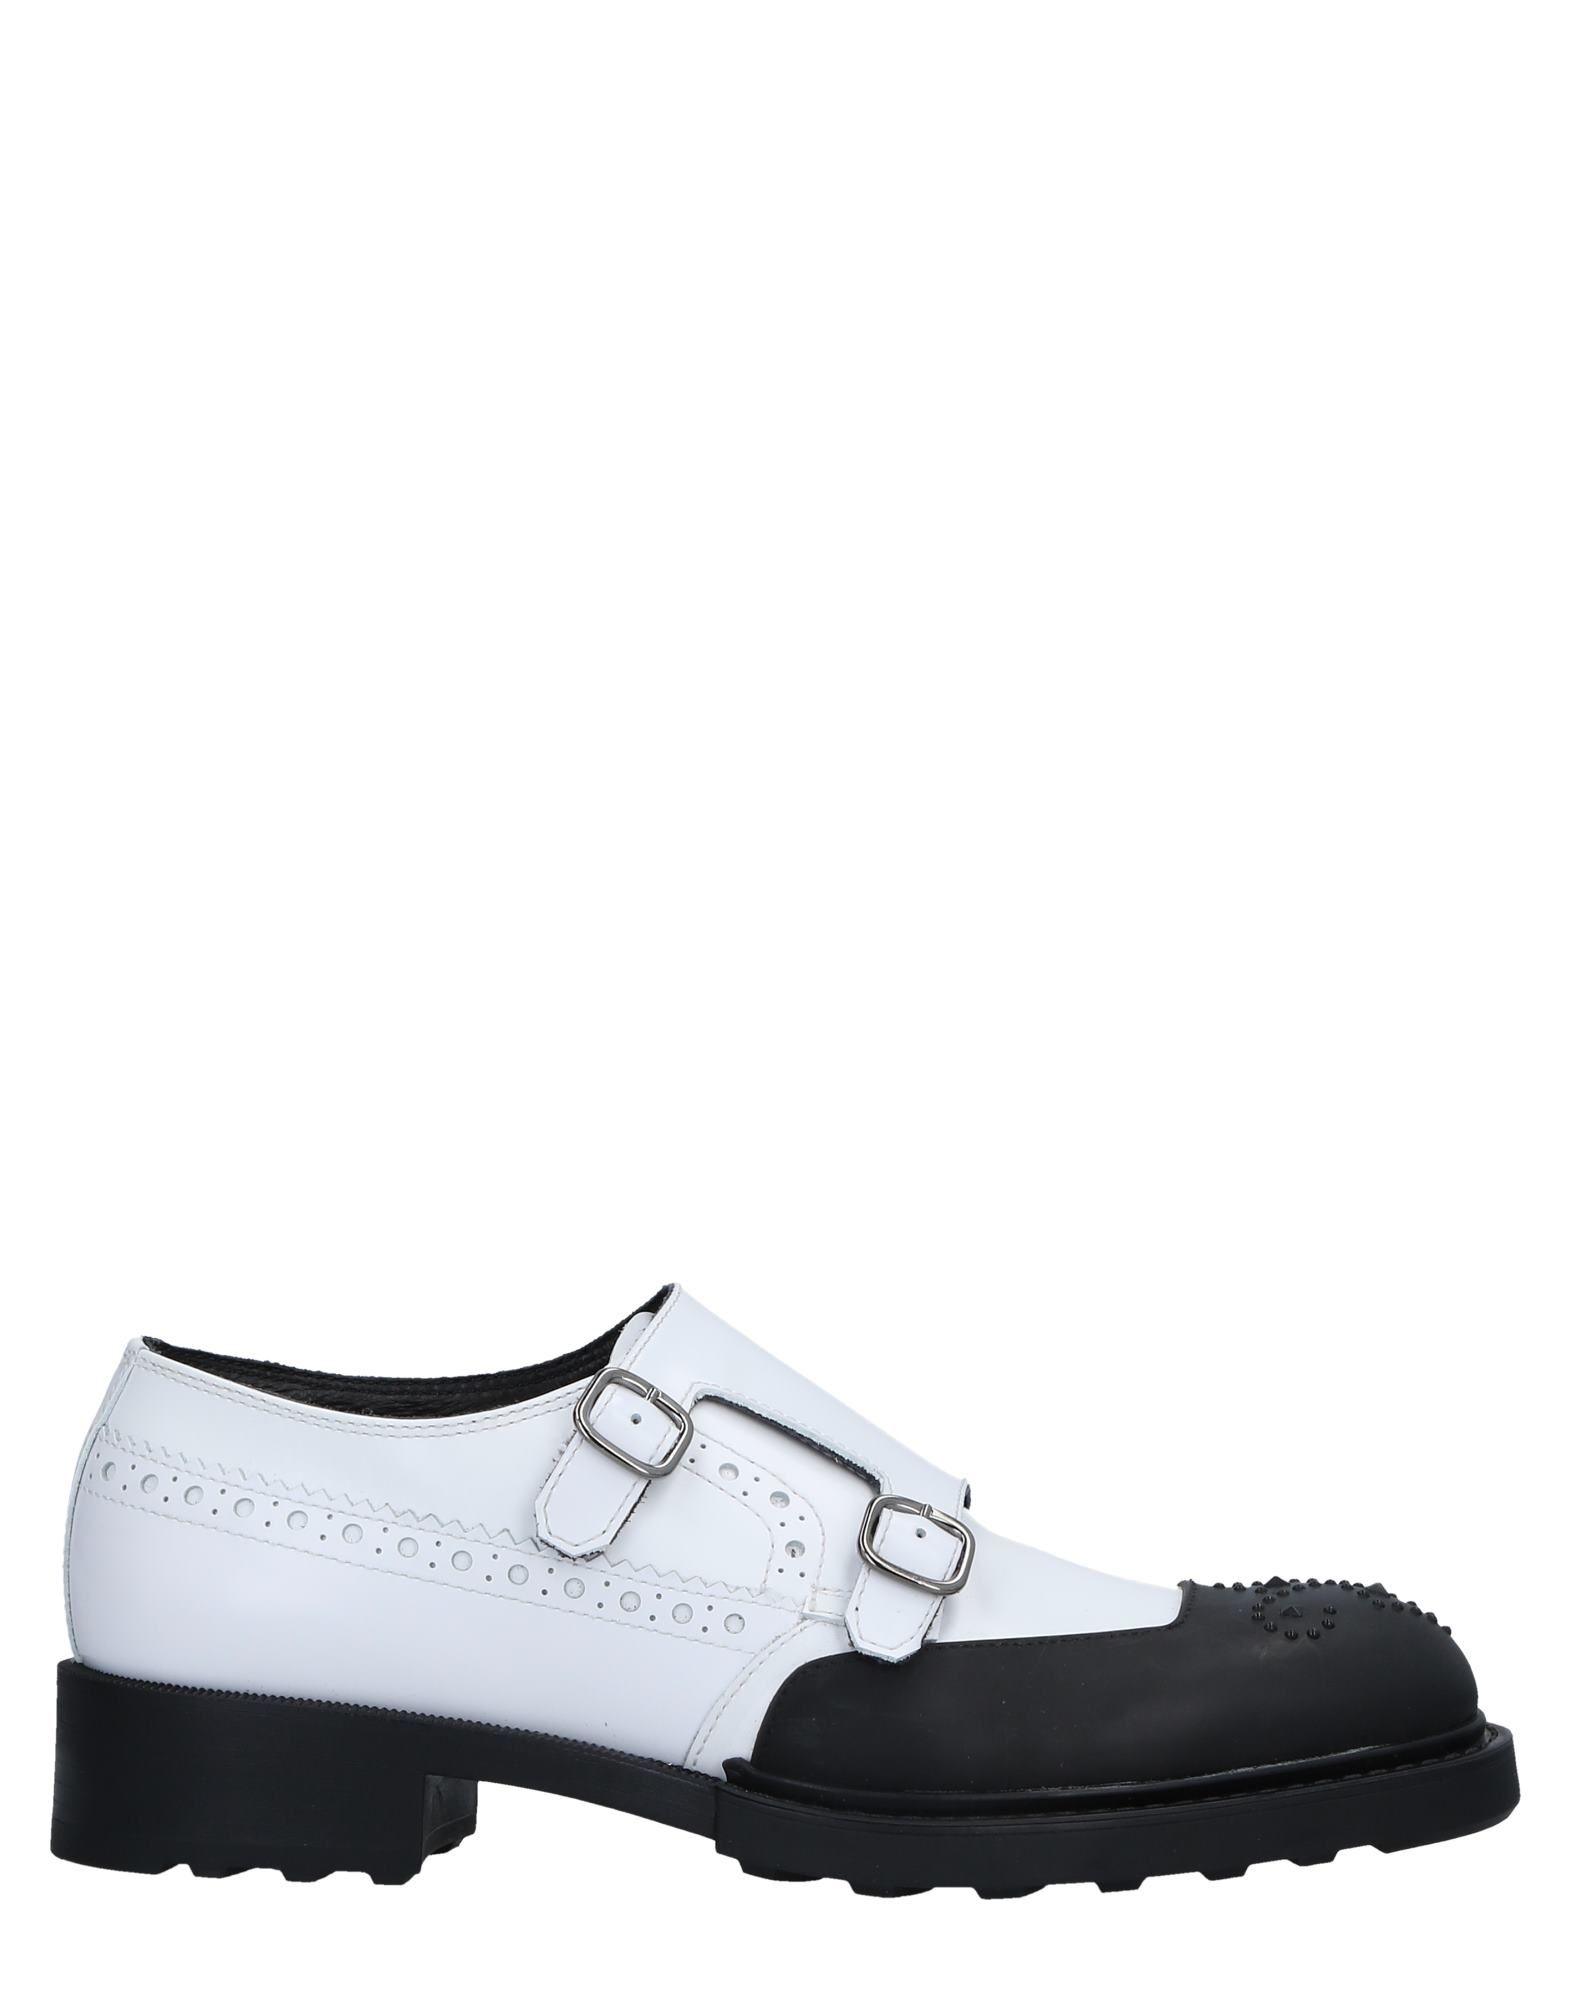 Moda Mocassino Barracuda Donna - 11518395PW